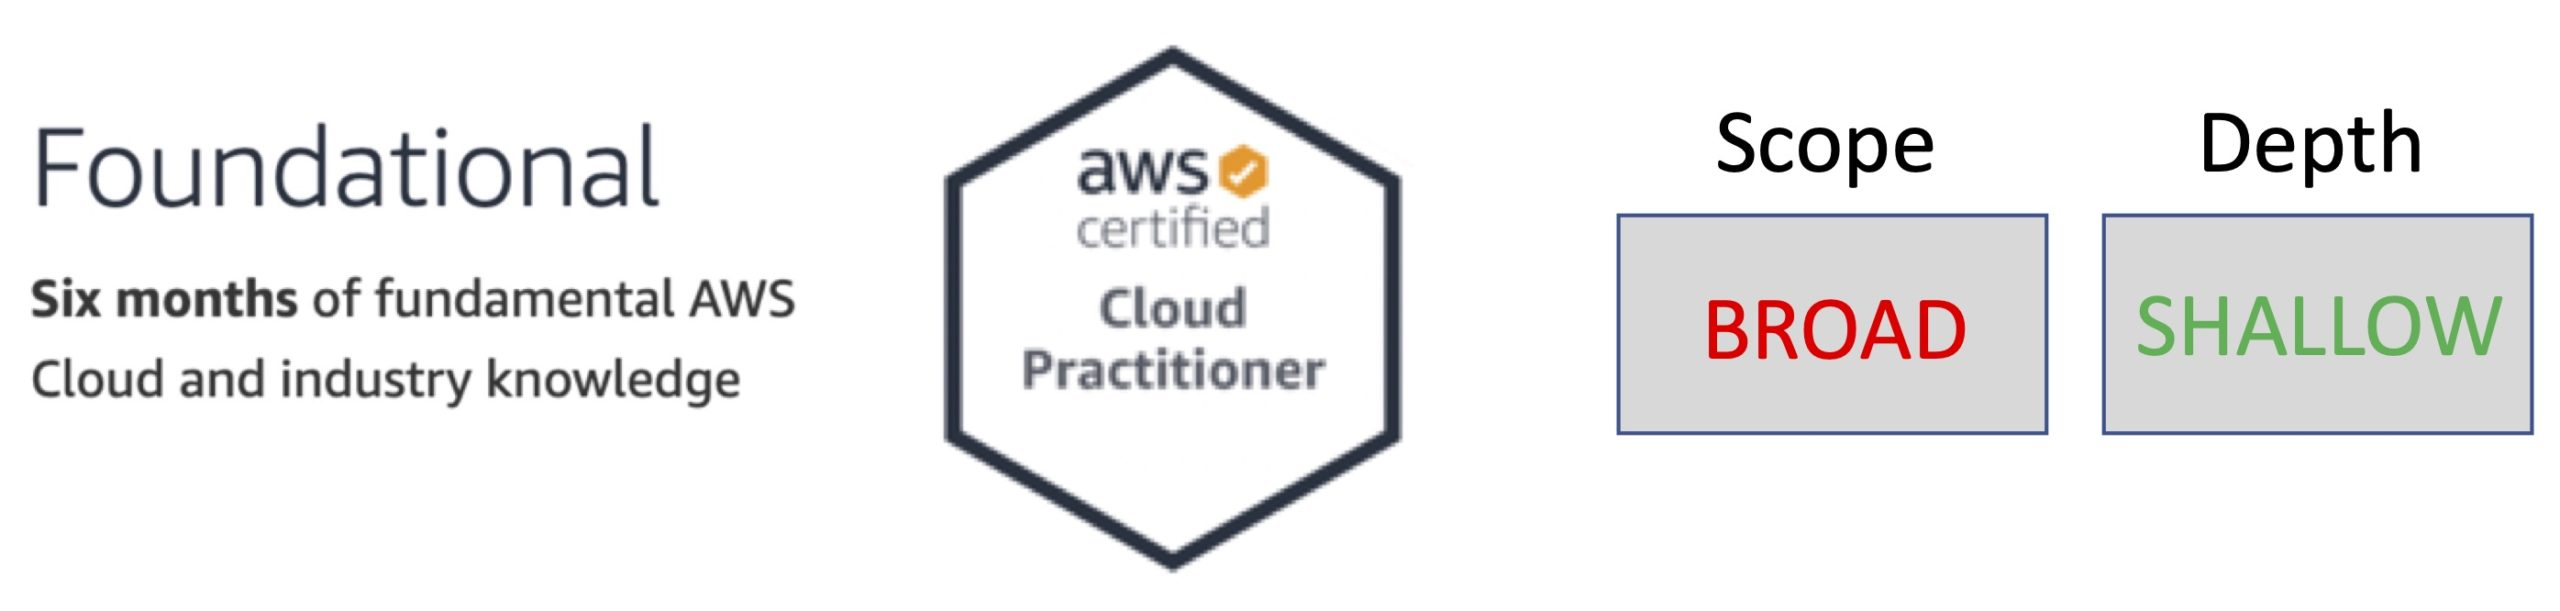 AWS Foundational Level Certifications